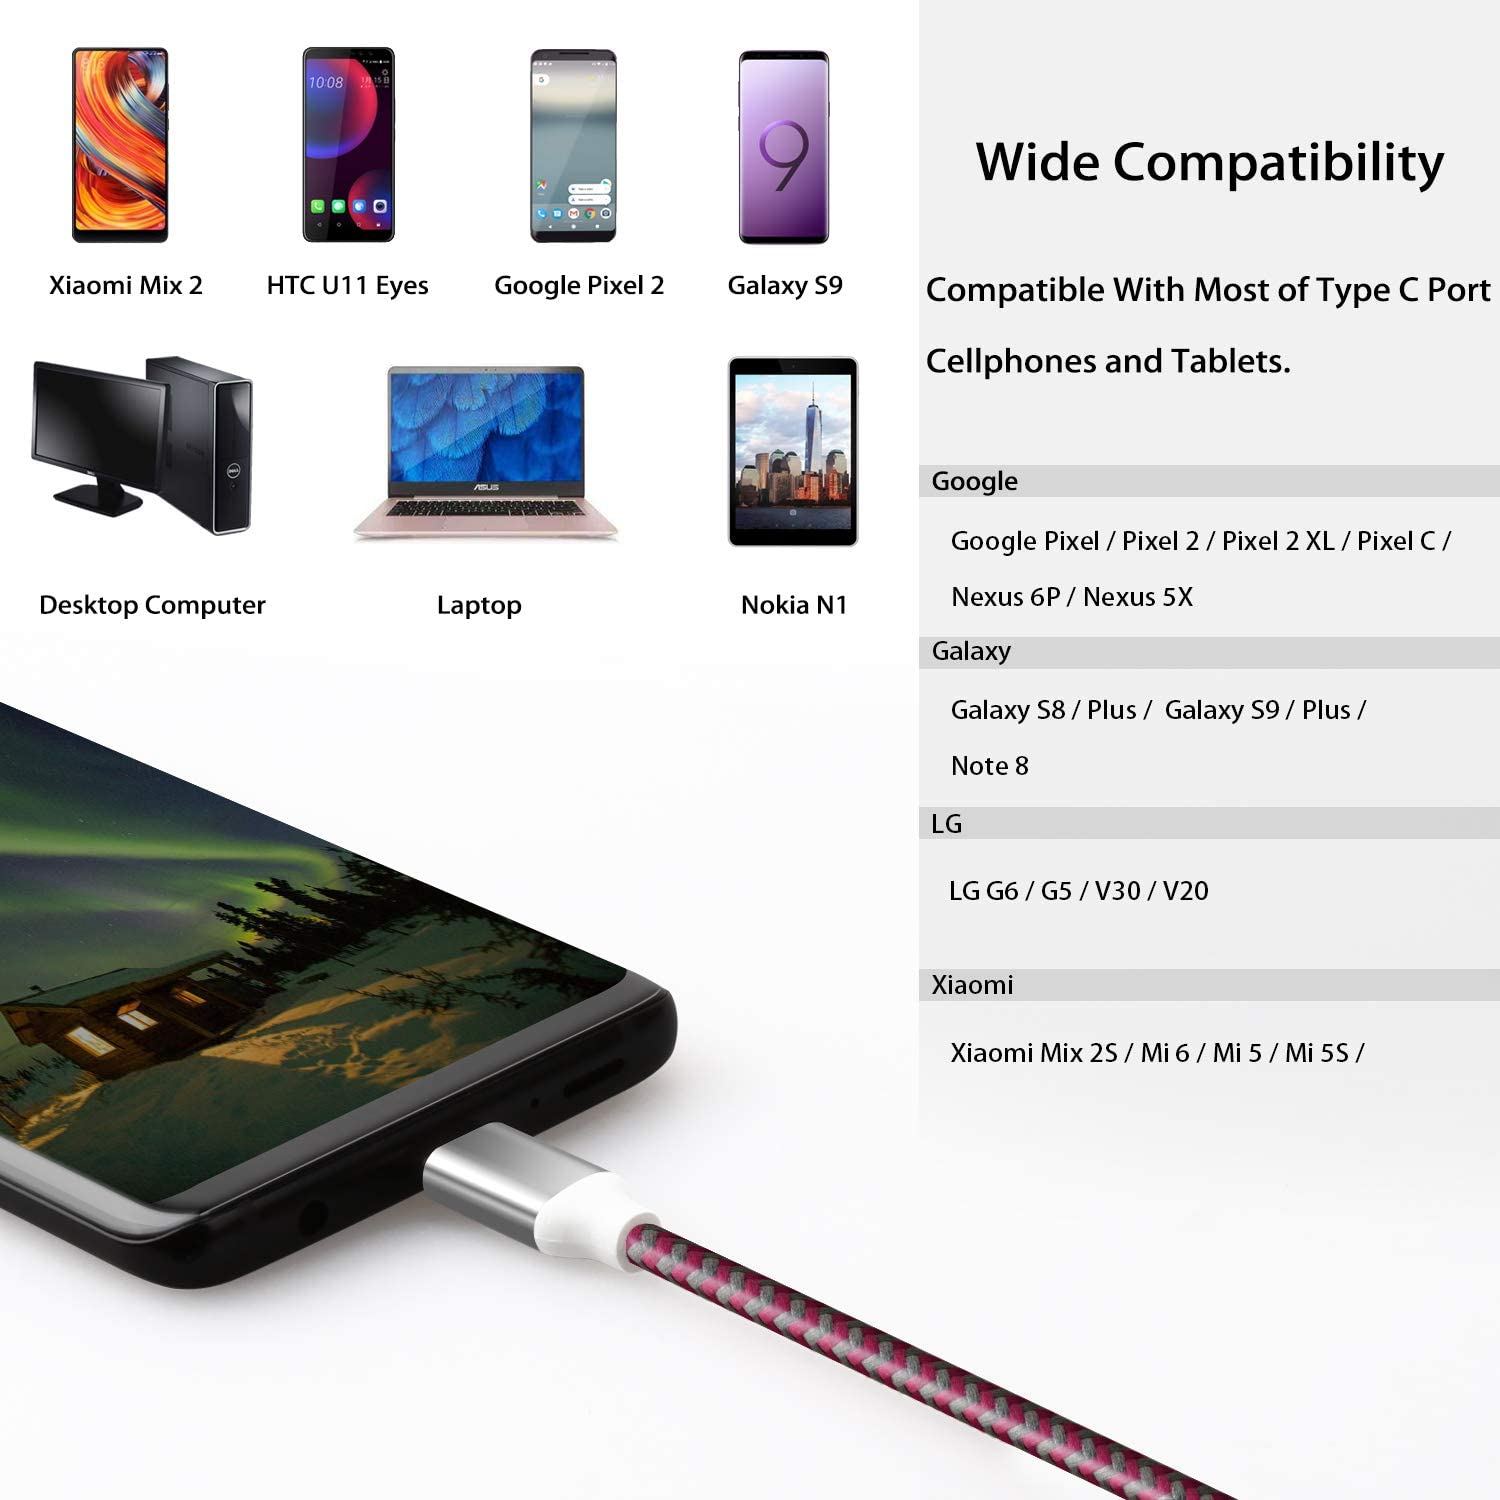 USB Type C Cable 10ft, Fasgear 3 Pack Long USB to USB C Cable Nylon Braided Fast Charging Compatible with Galaxy Note 8 9 S8/S9/S10/S10+, LG V20/G6 and More (Blue/Black/Rose)